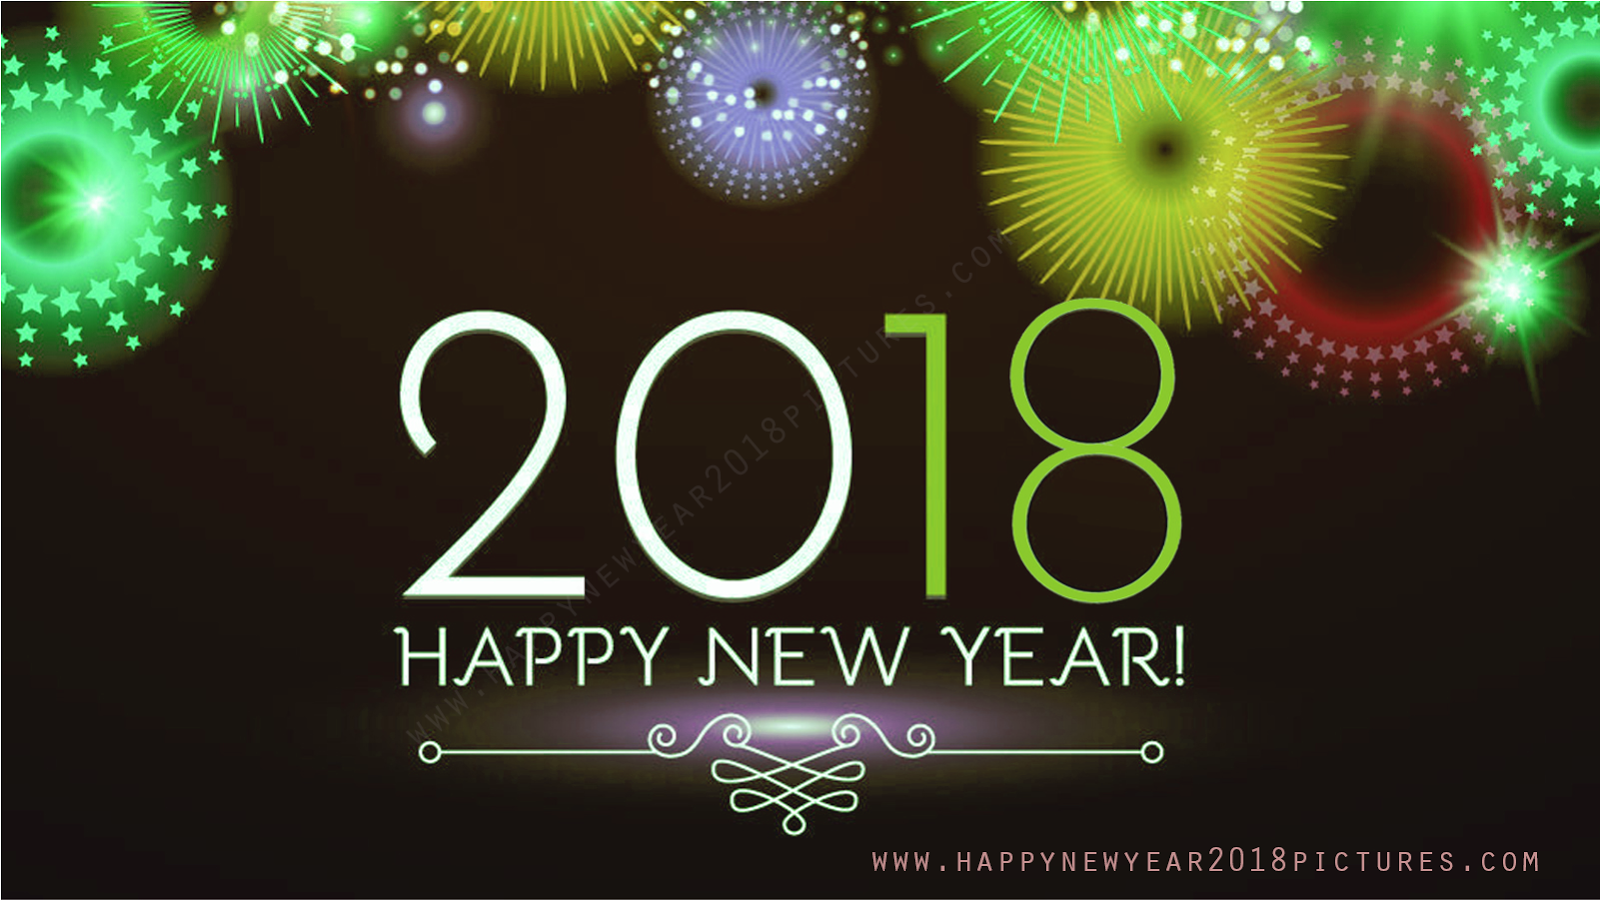 Happy New Year 2018 Dp For Whatsapp Couples Dp New Year 2018 Hd